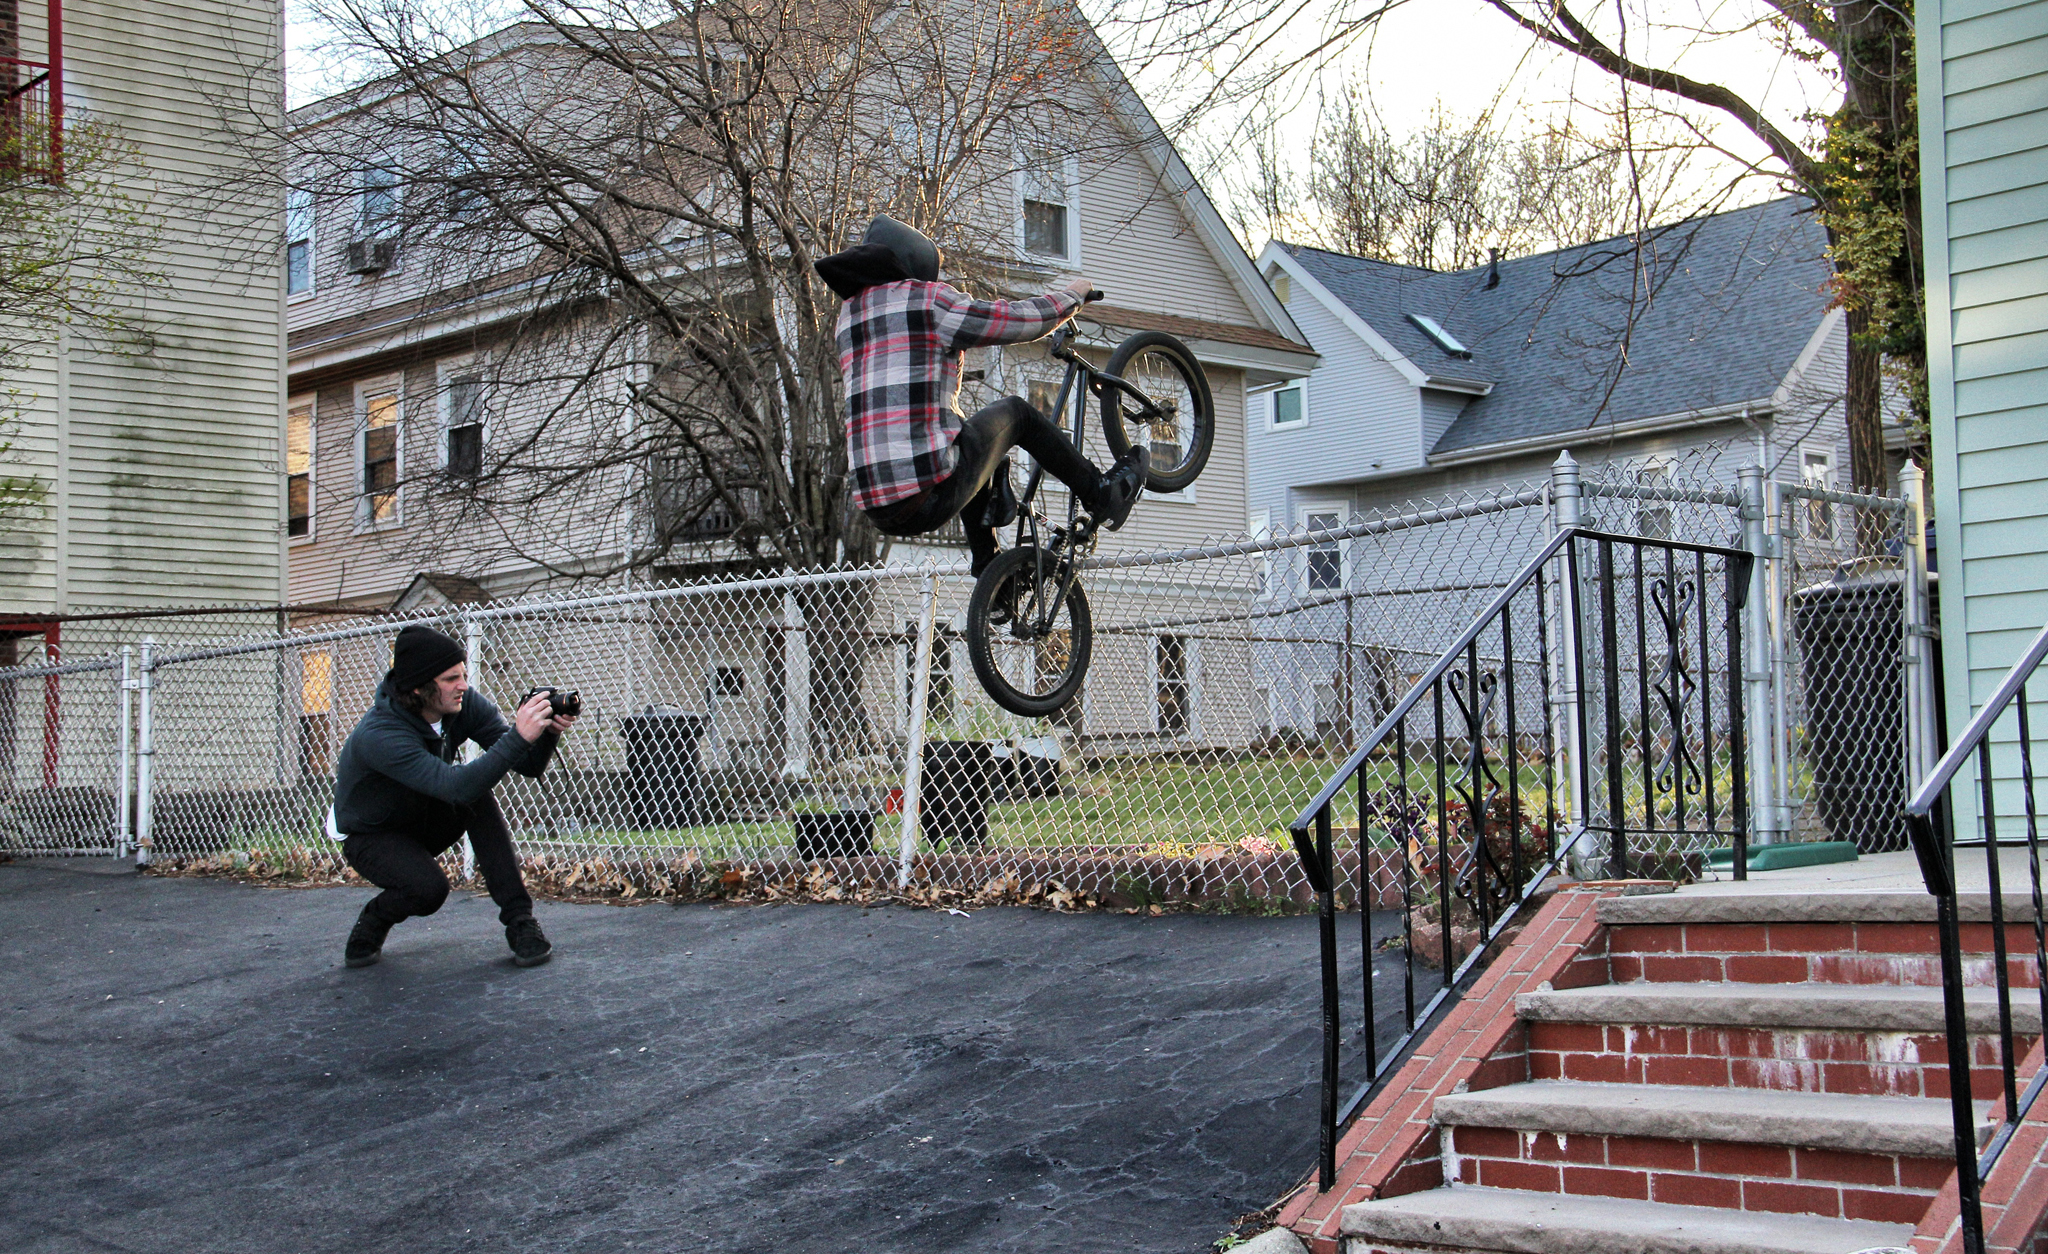 /photo/2012/1121/as_bmx_bonedeth2_2048.jpg